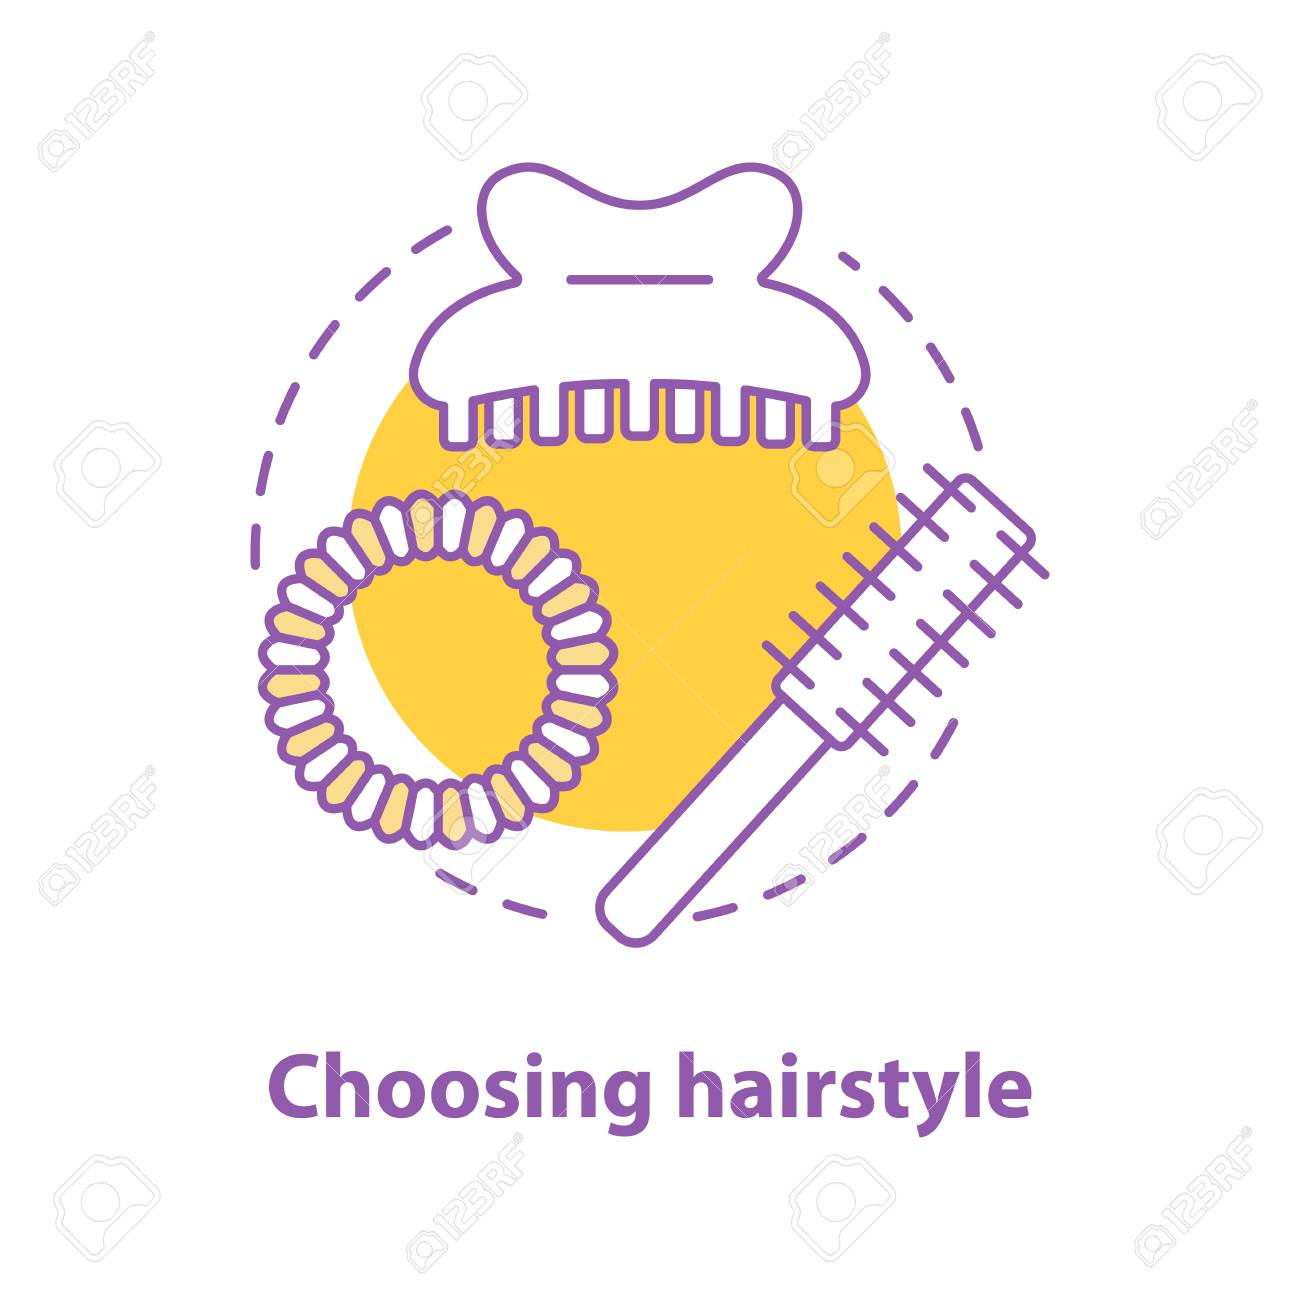 choosing hairstyle concept icon